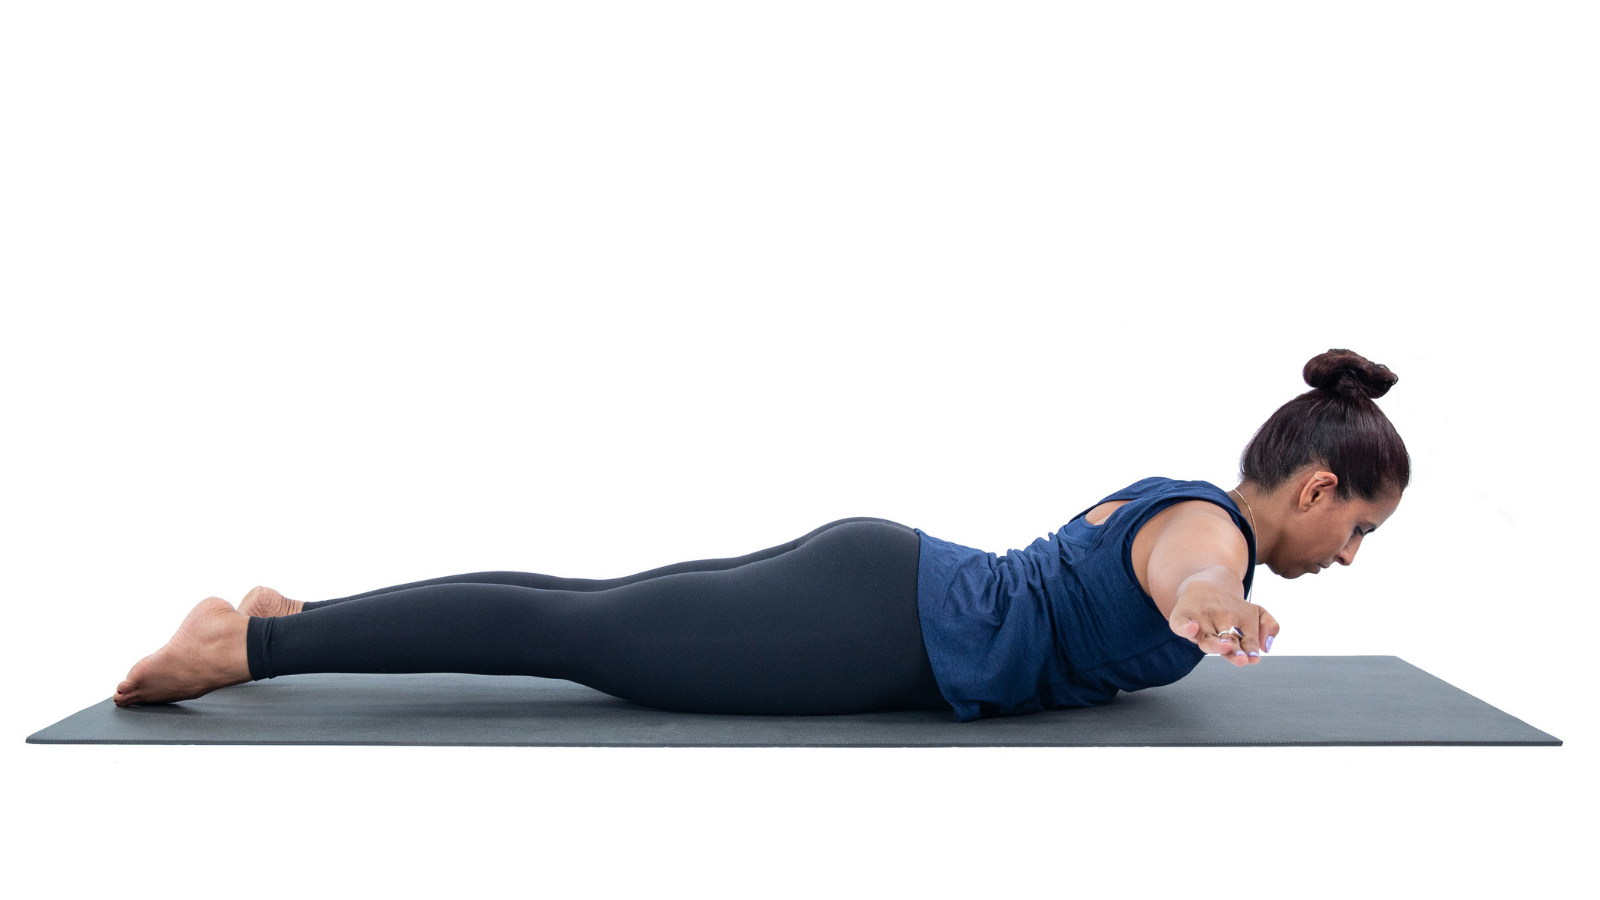 Practicing Cobra Pose or Bhujangasana as part of the yoga practice to open the heart chakra